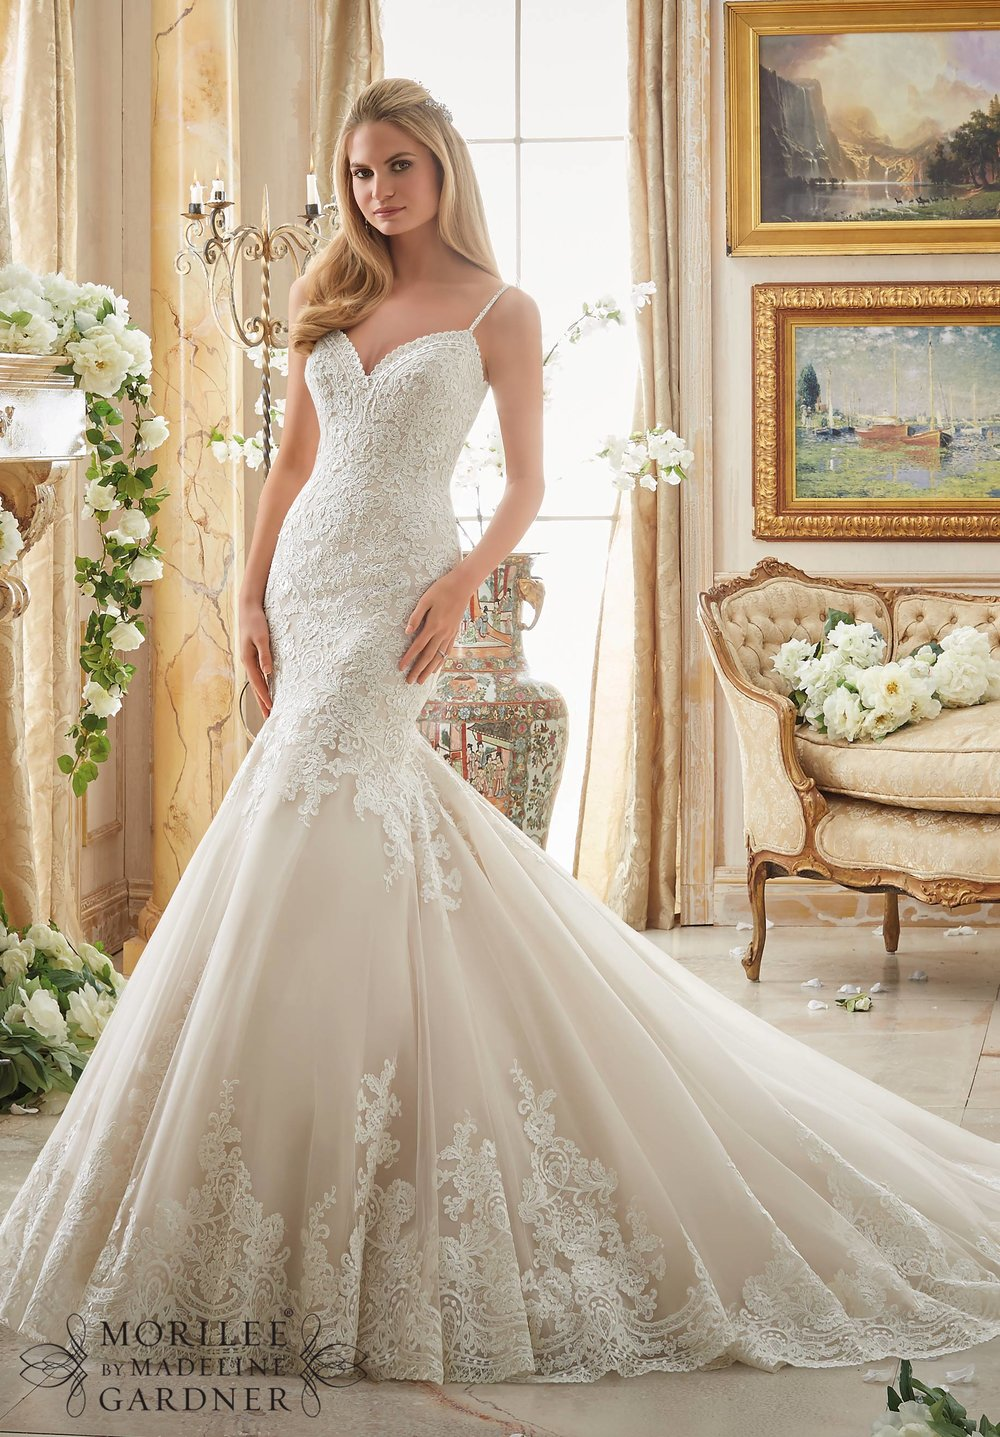 Romantic lace Mori Lee Bridal wedding dress